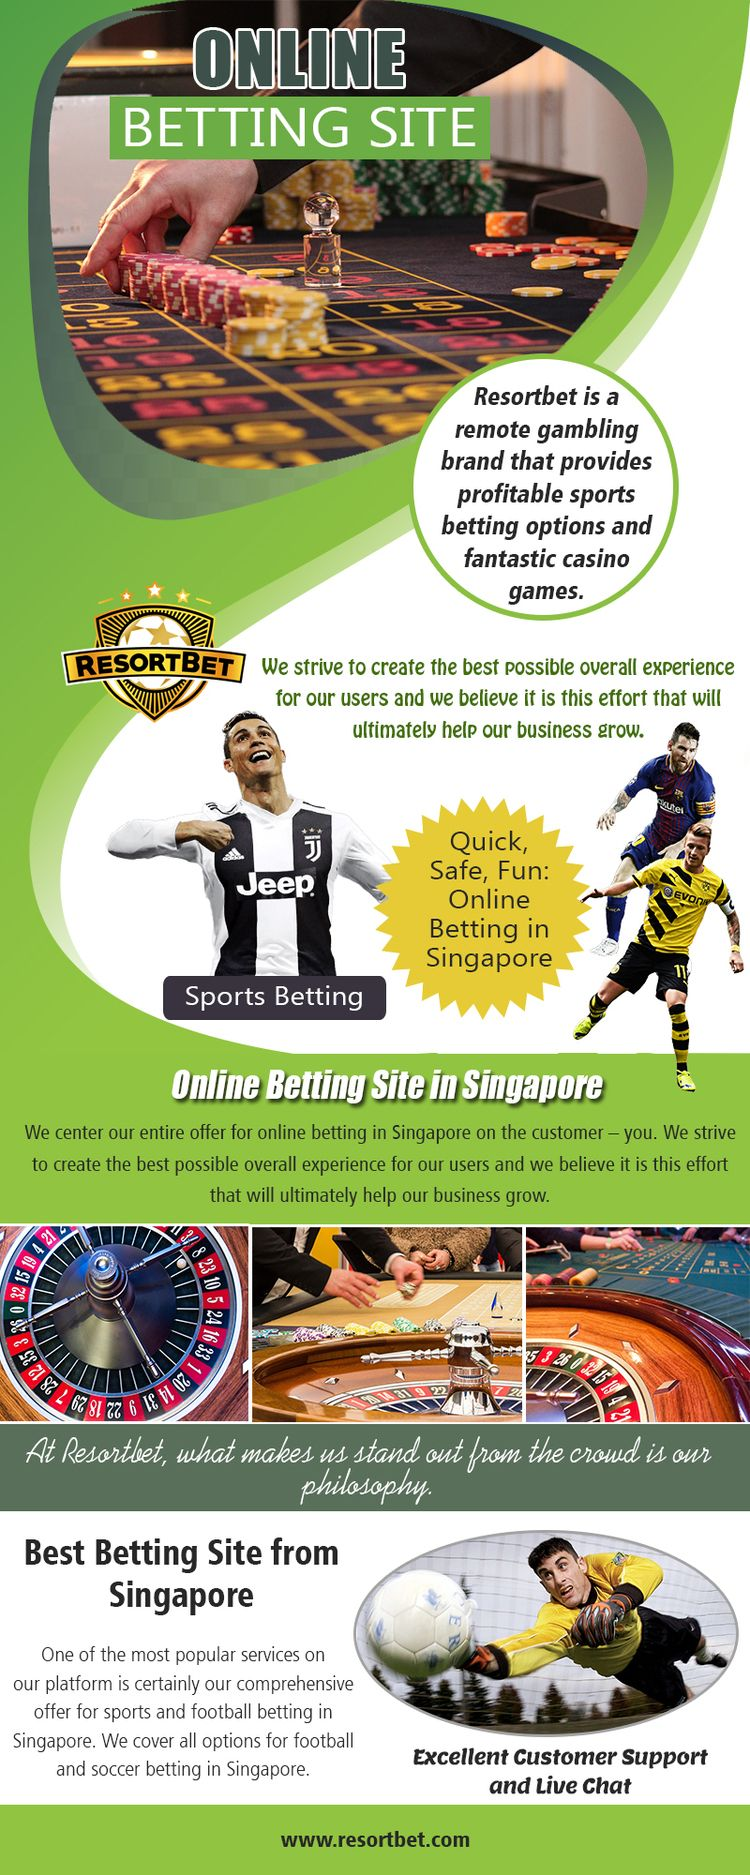 Online Betting | Call - 65 8651 - resortbet | ello